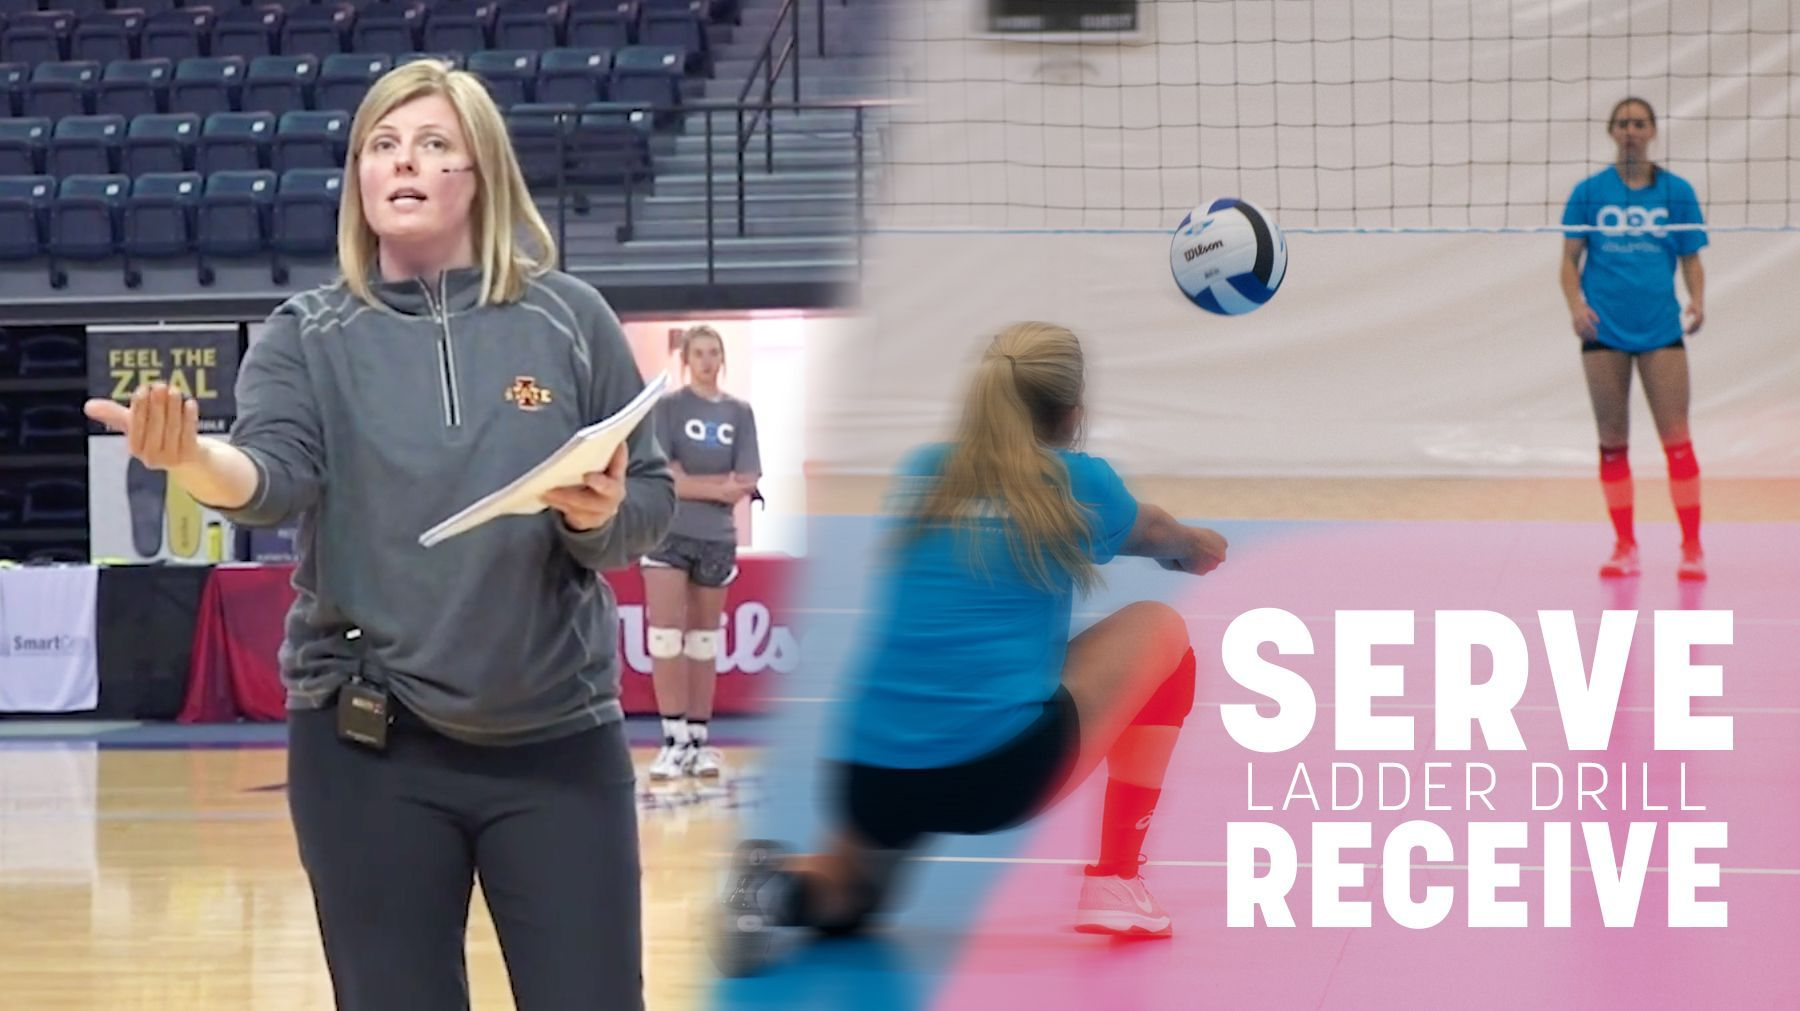 Serve Receive Ladder Drill The Art Of Coaching Volleyball Coaching Volleyball Volleyball Drills Volleyball Skills